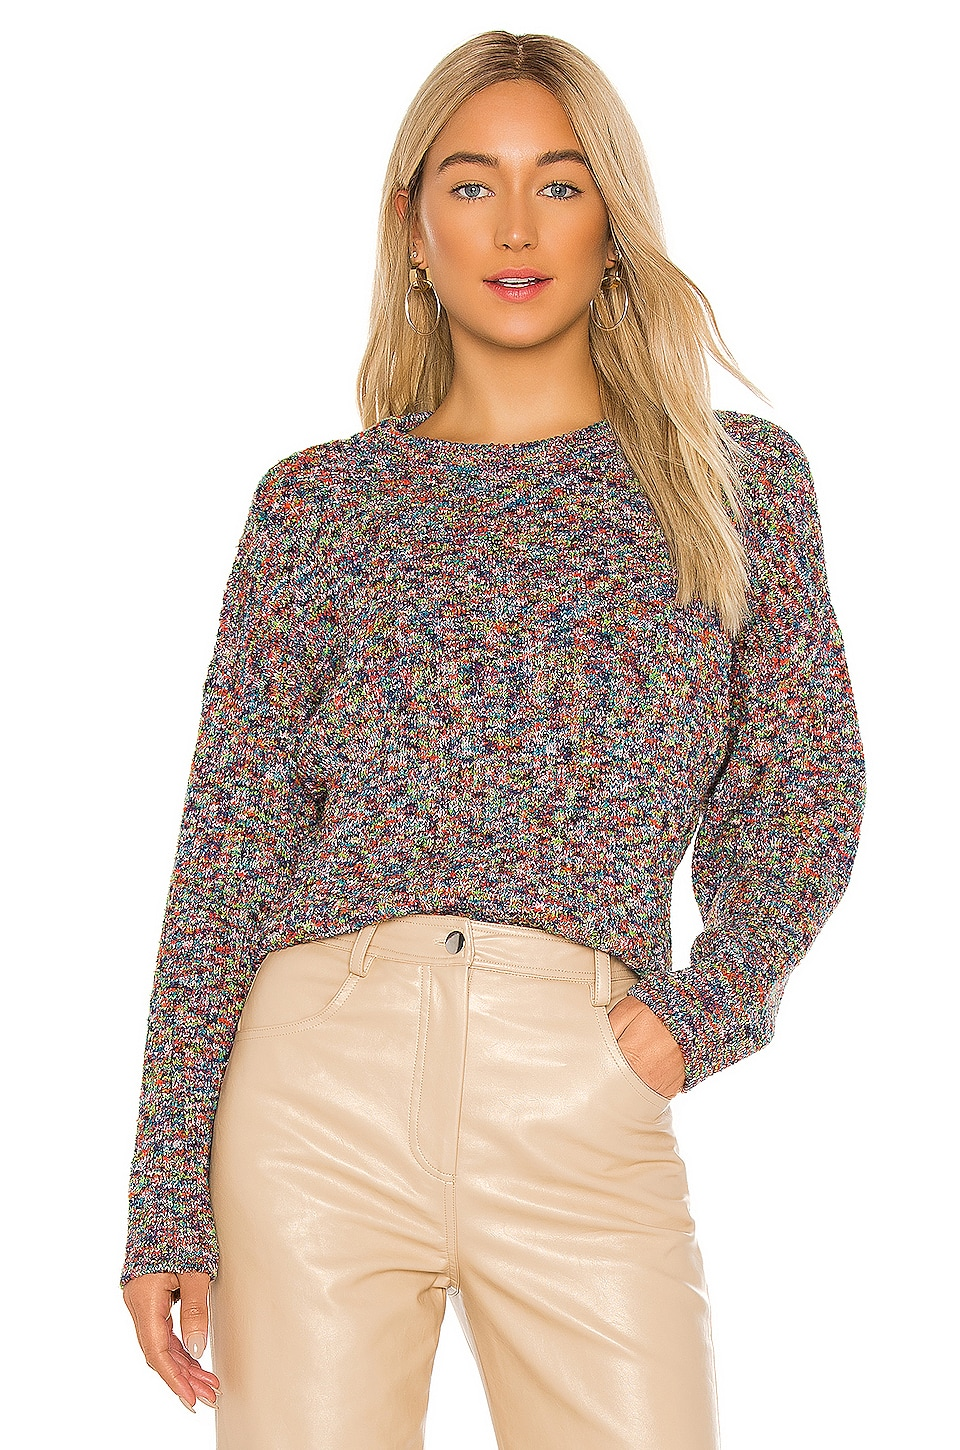 Parker Wayne Sweater in Scattered Rainbow